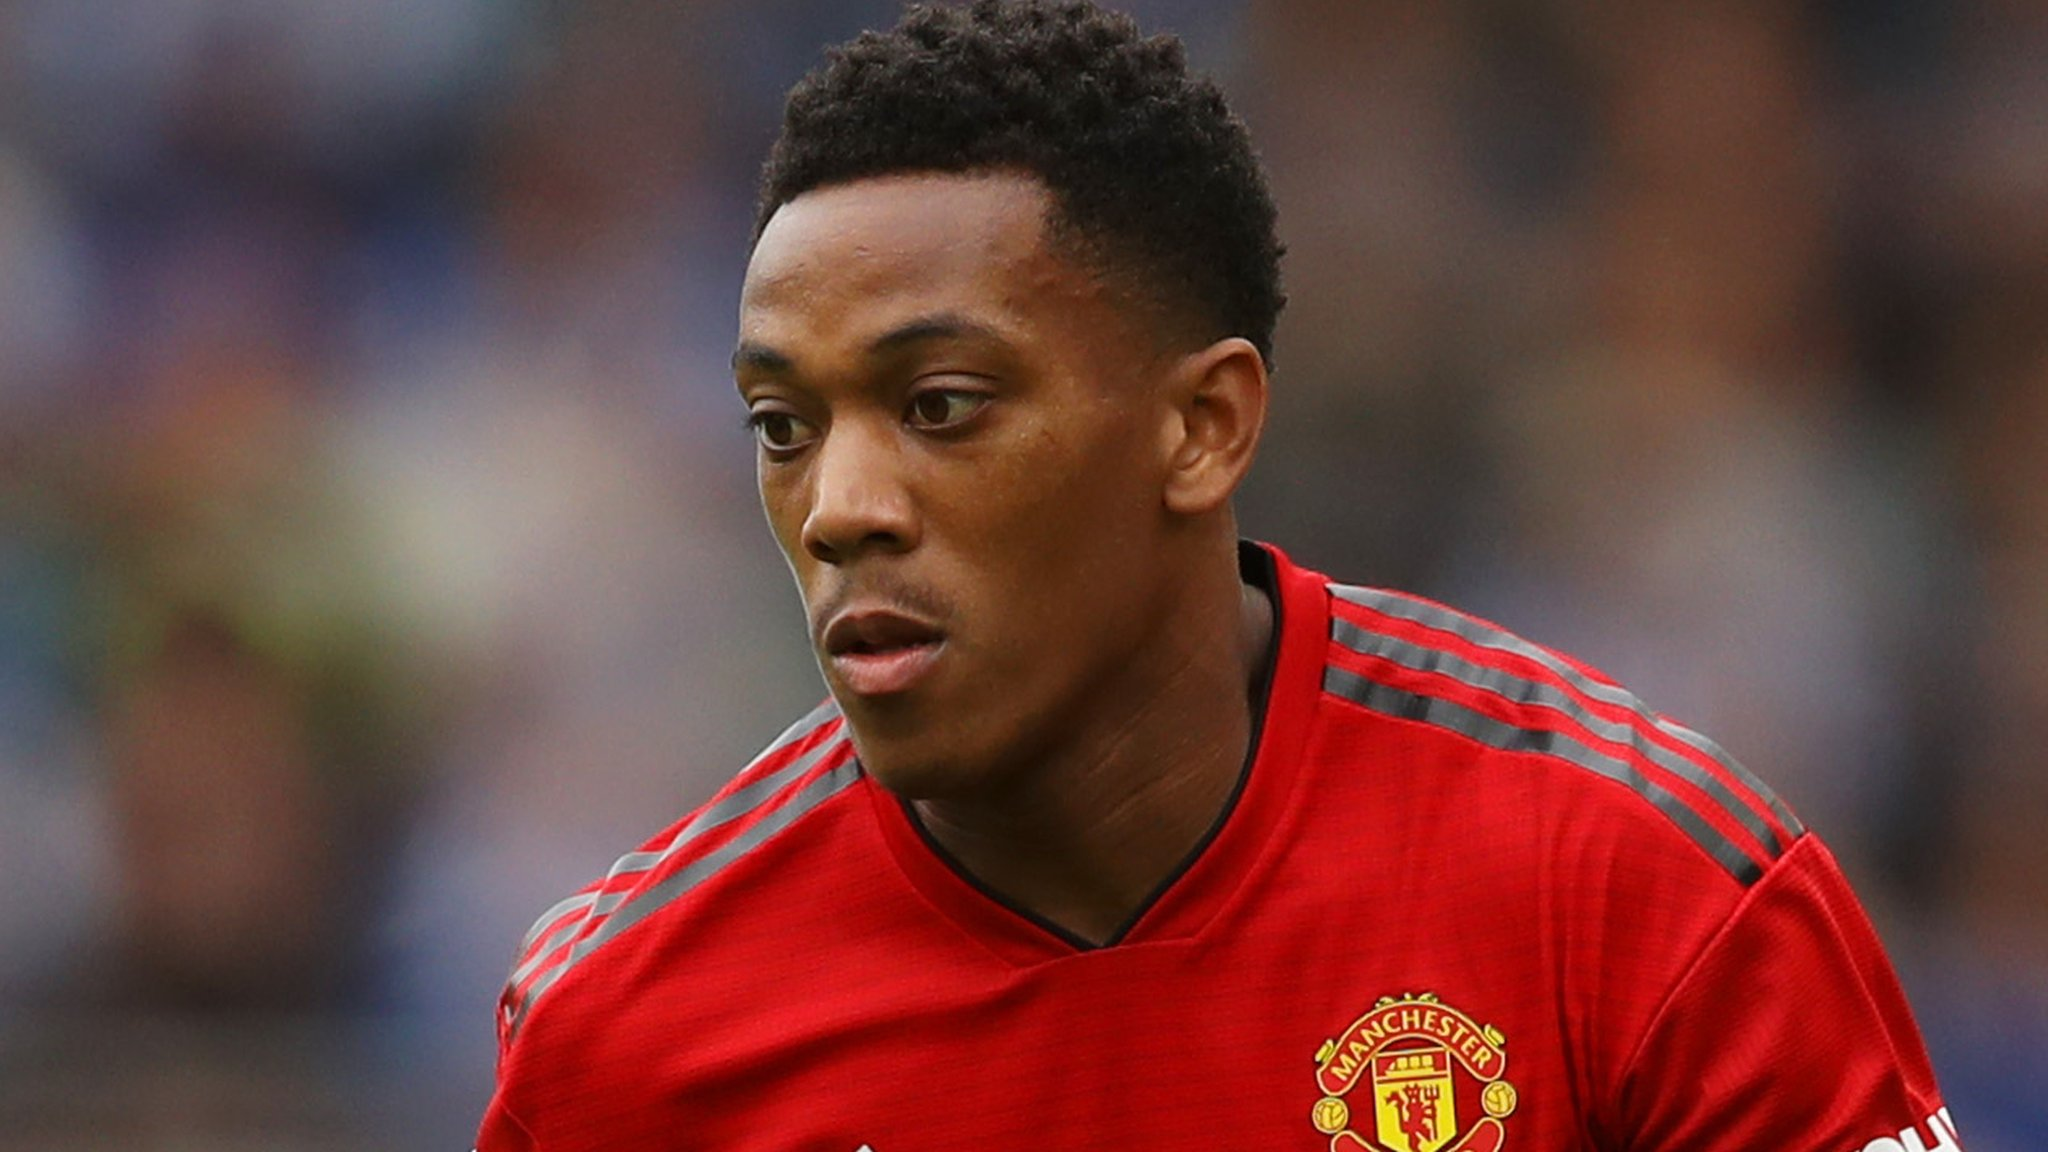 Mourinho tells Man Utd chiefs to sell Martial - gossip